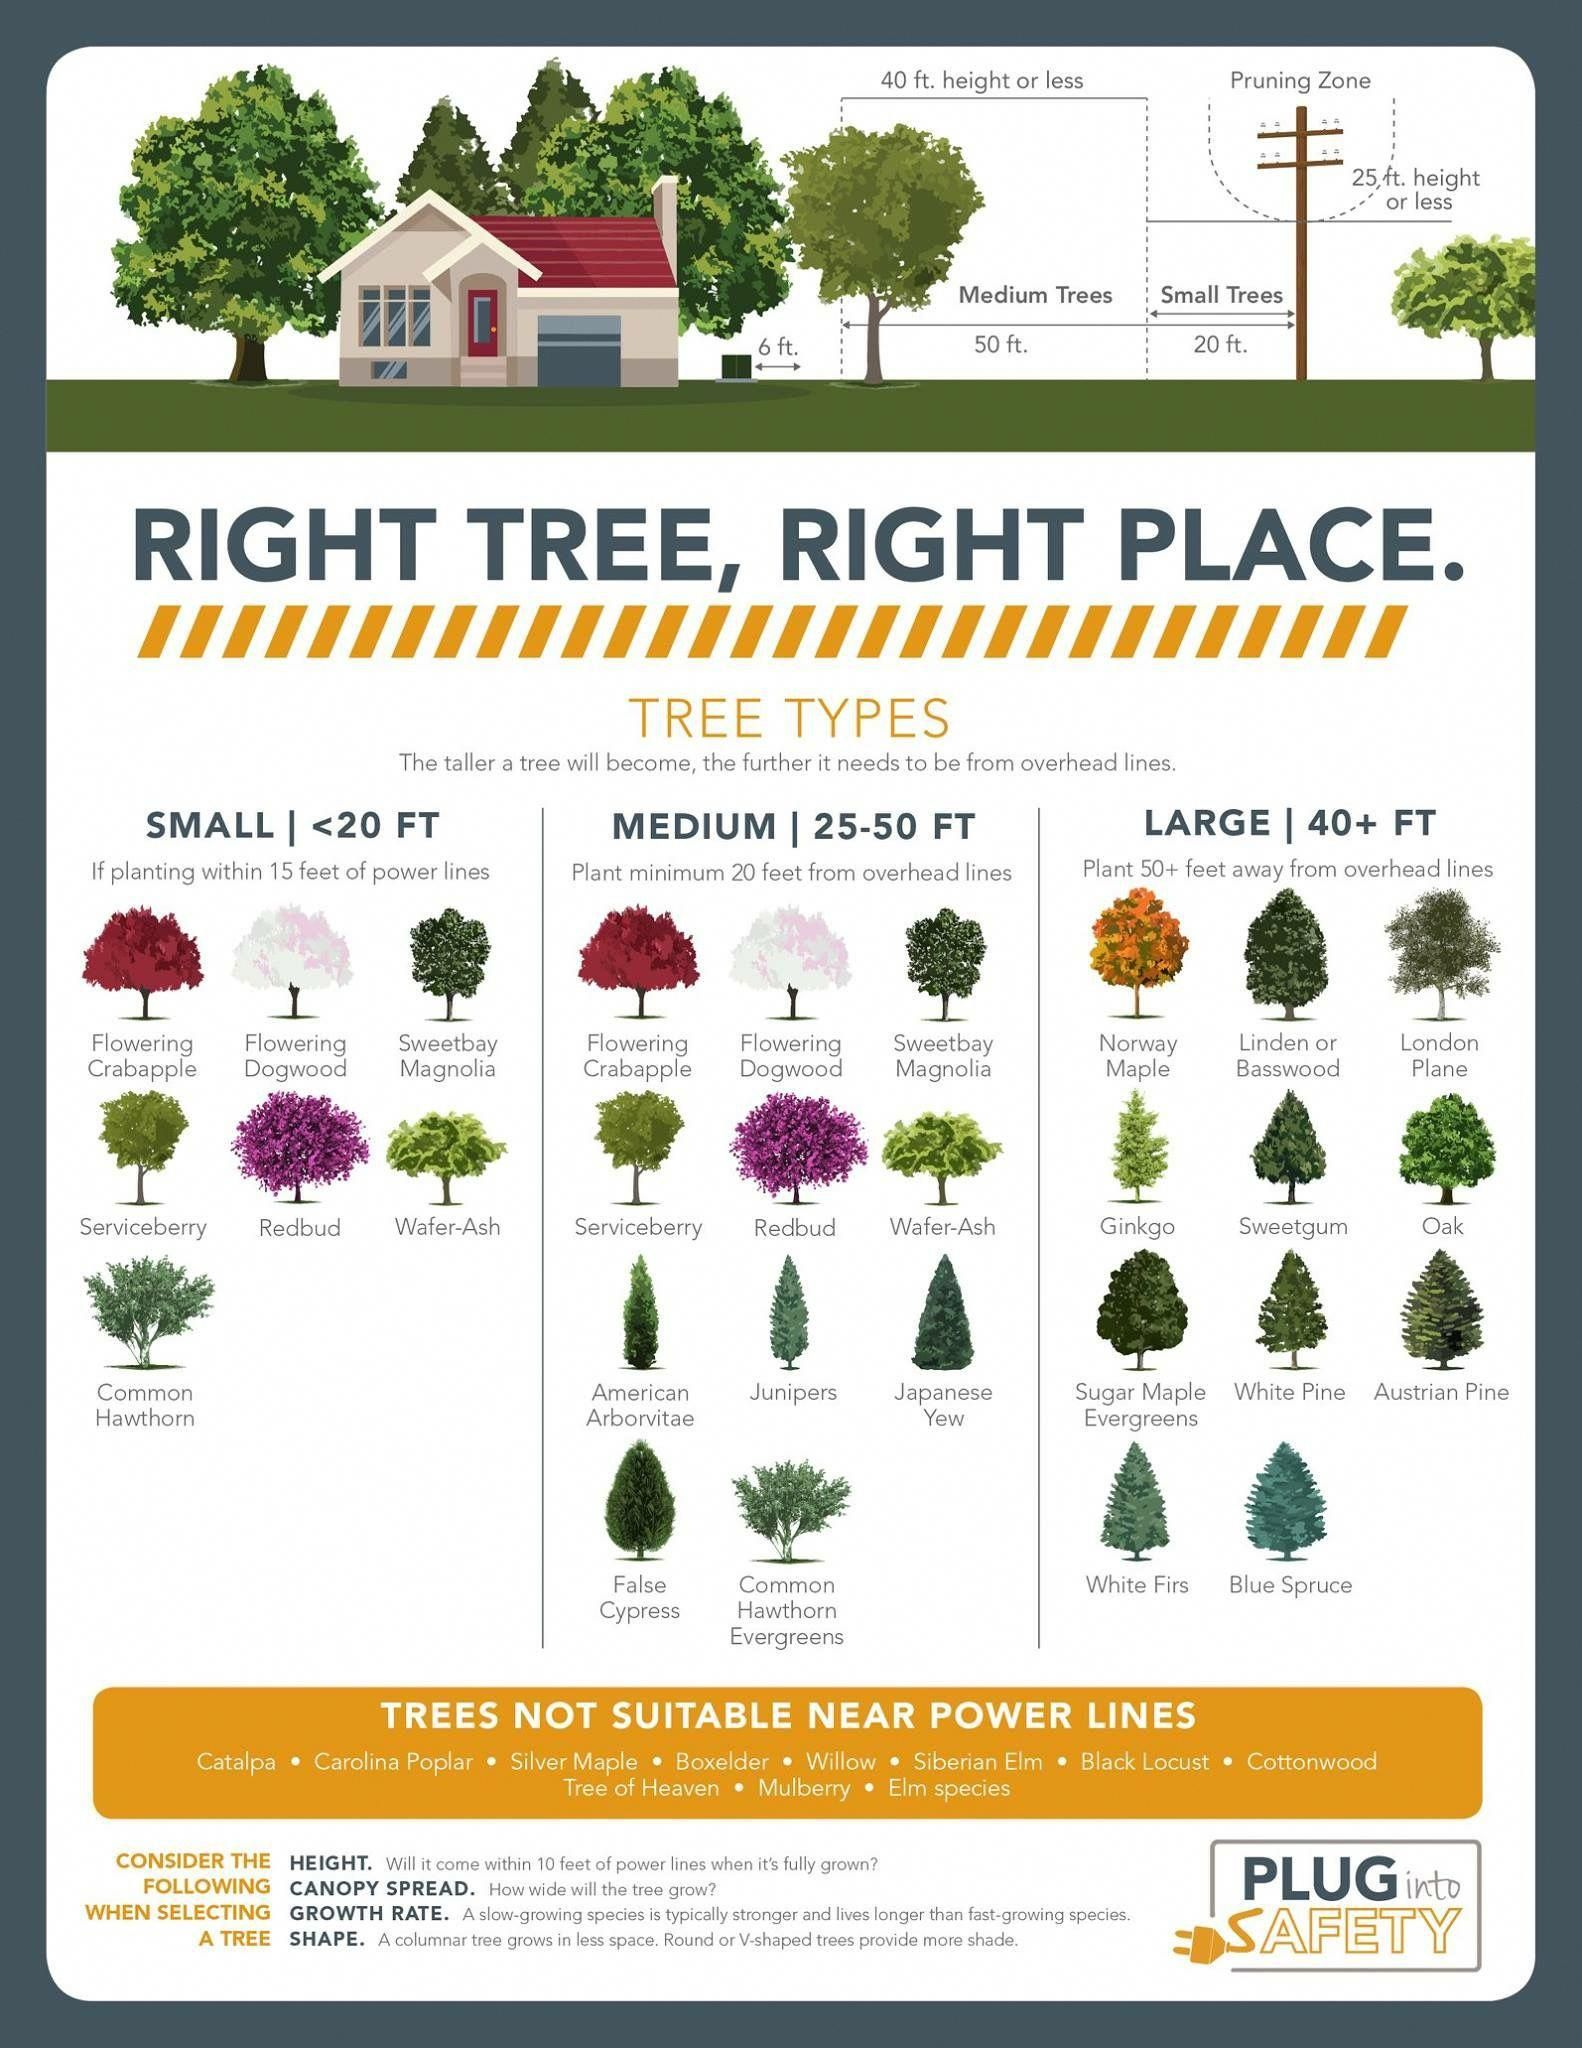 Pin By Sharon Pellum On My Home In 2020 Garden Design Flower Garden Plans Flower Garden Design